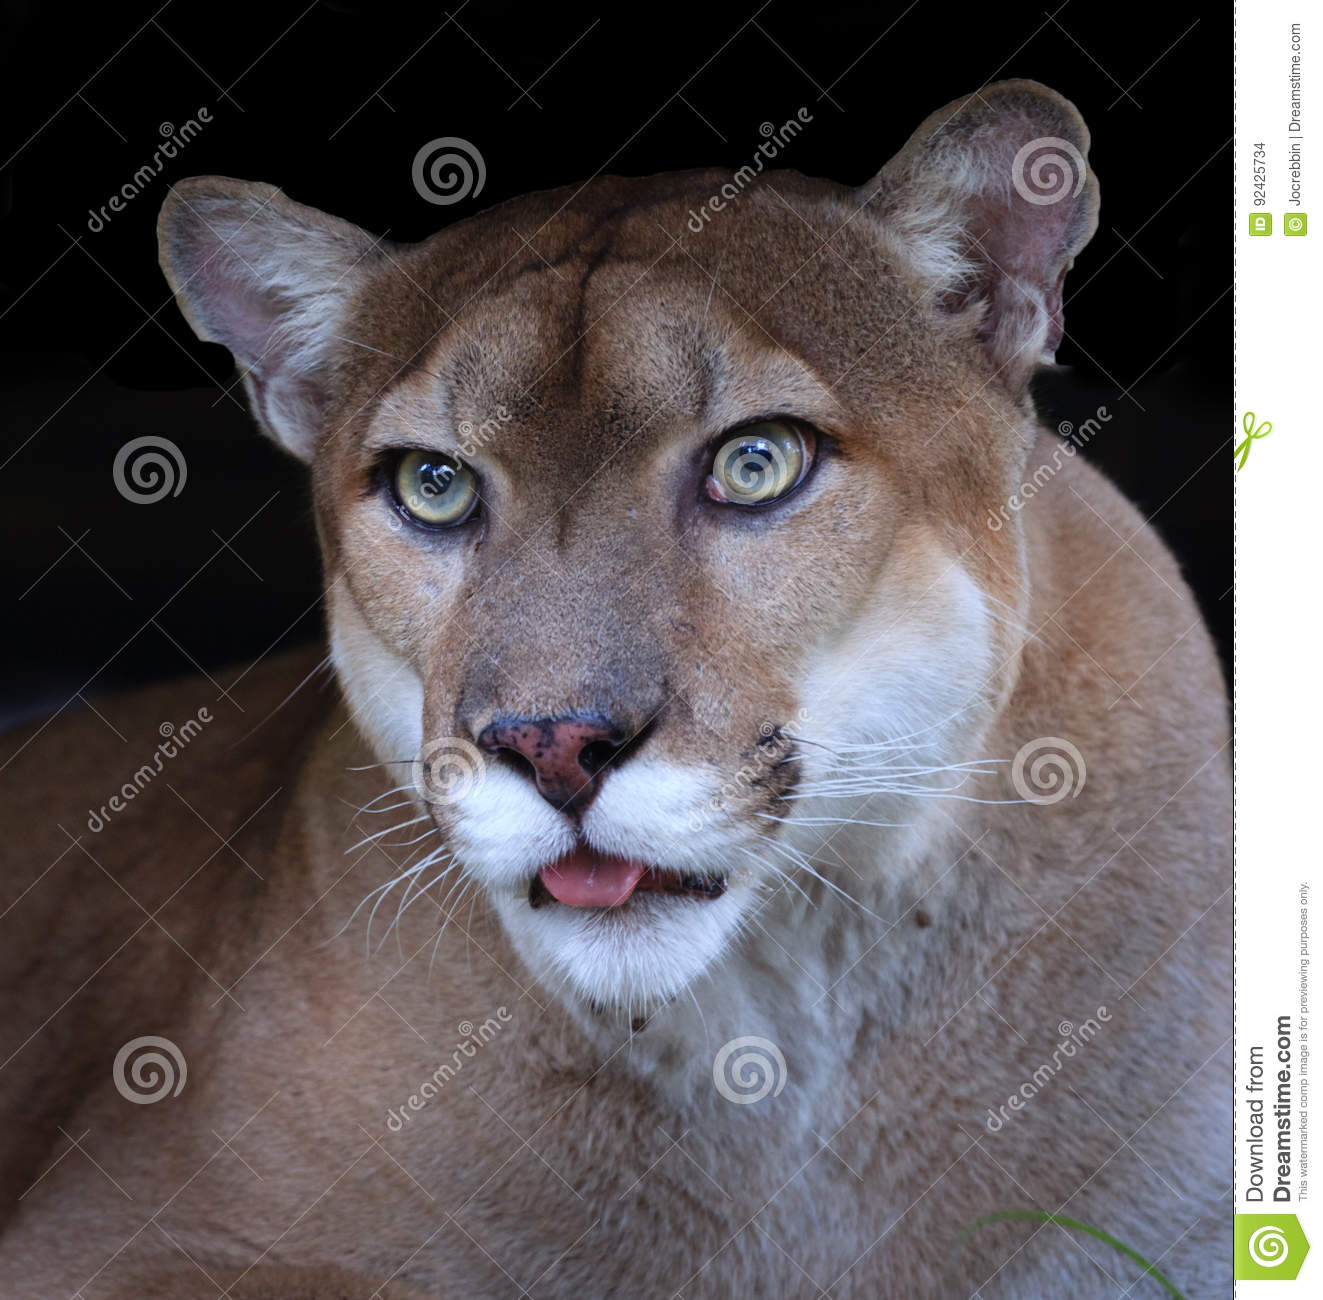 ed79eb6bf29 Florida Panther Close Up Black Background Stock Photo - Image of ...